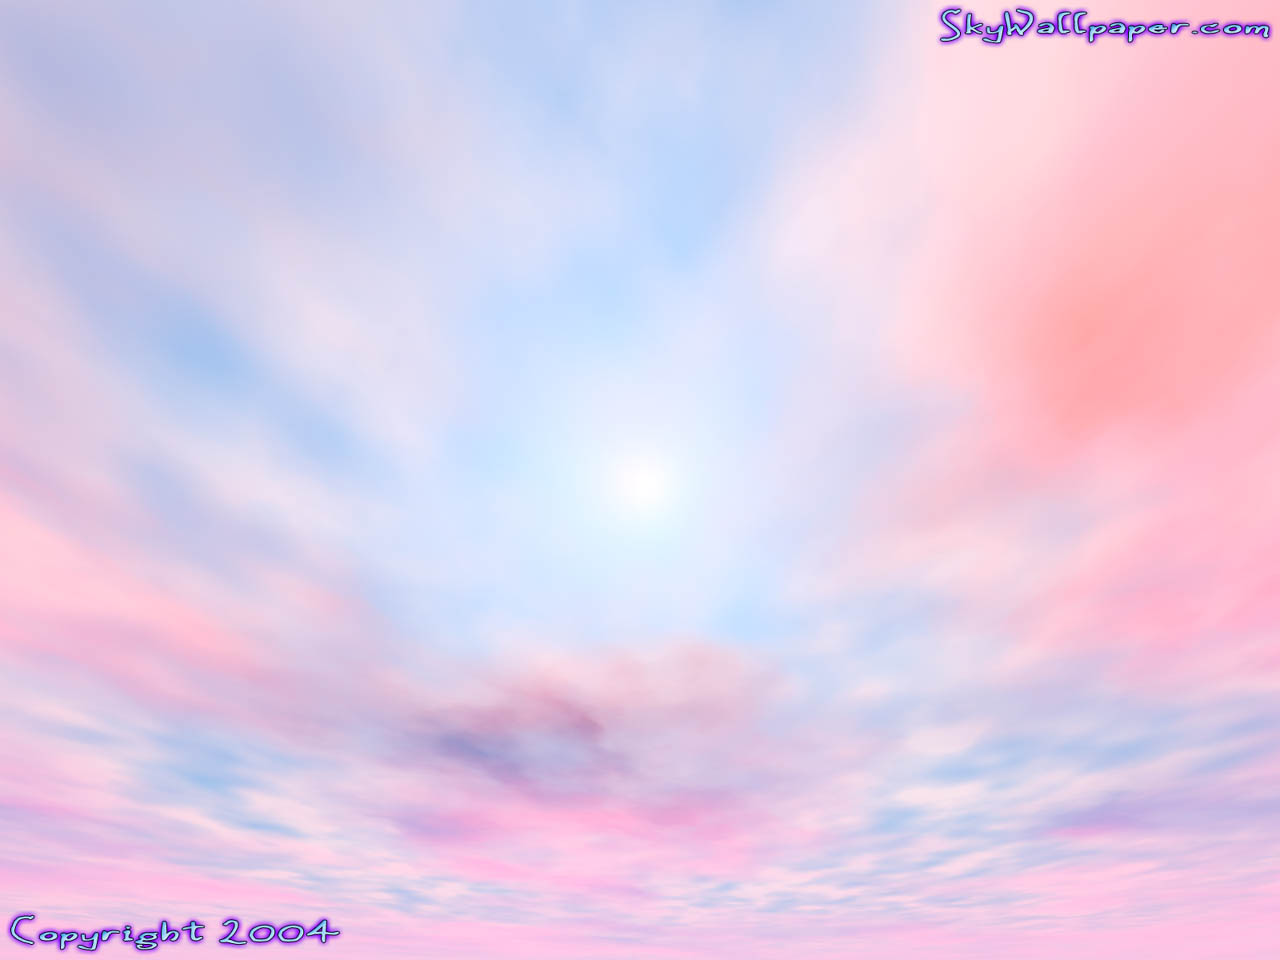 """Digital Sky Wallpaper Image"" - Wallpaper No. 108 of 109. Right click for saving options."